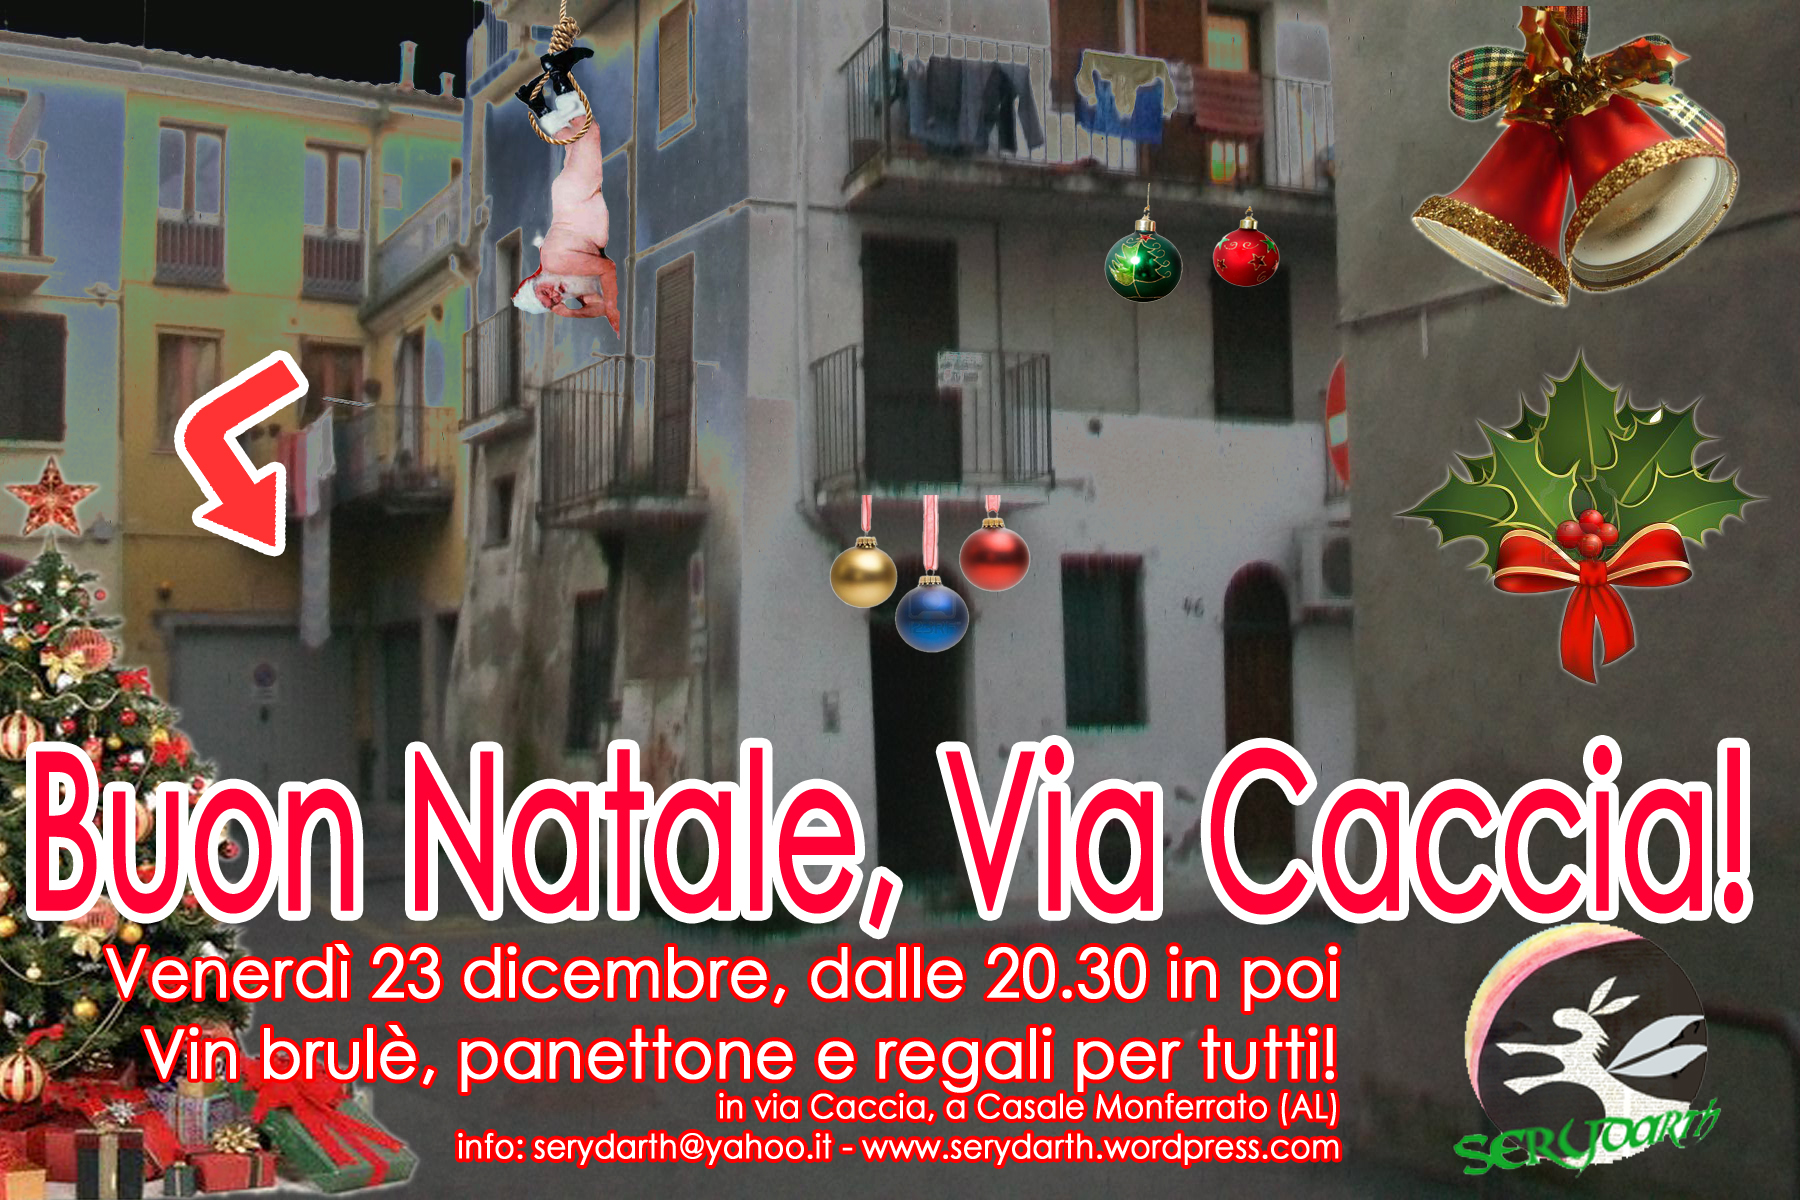 http://serydarth.files.wordpress.com/2011/12/buon-natale-via-caccia.jpg